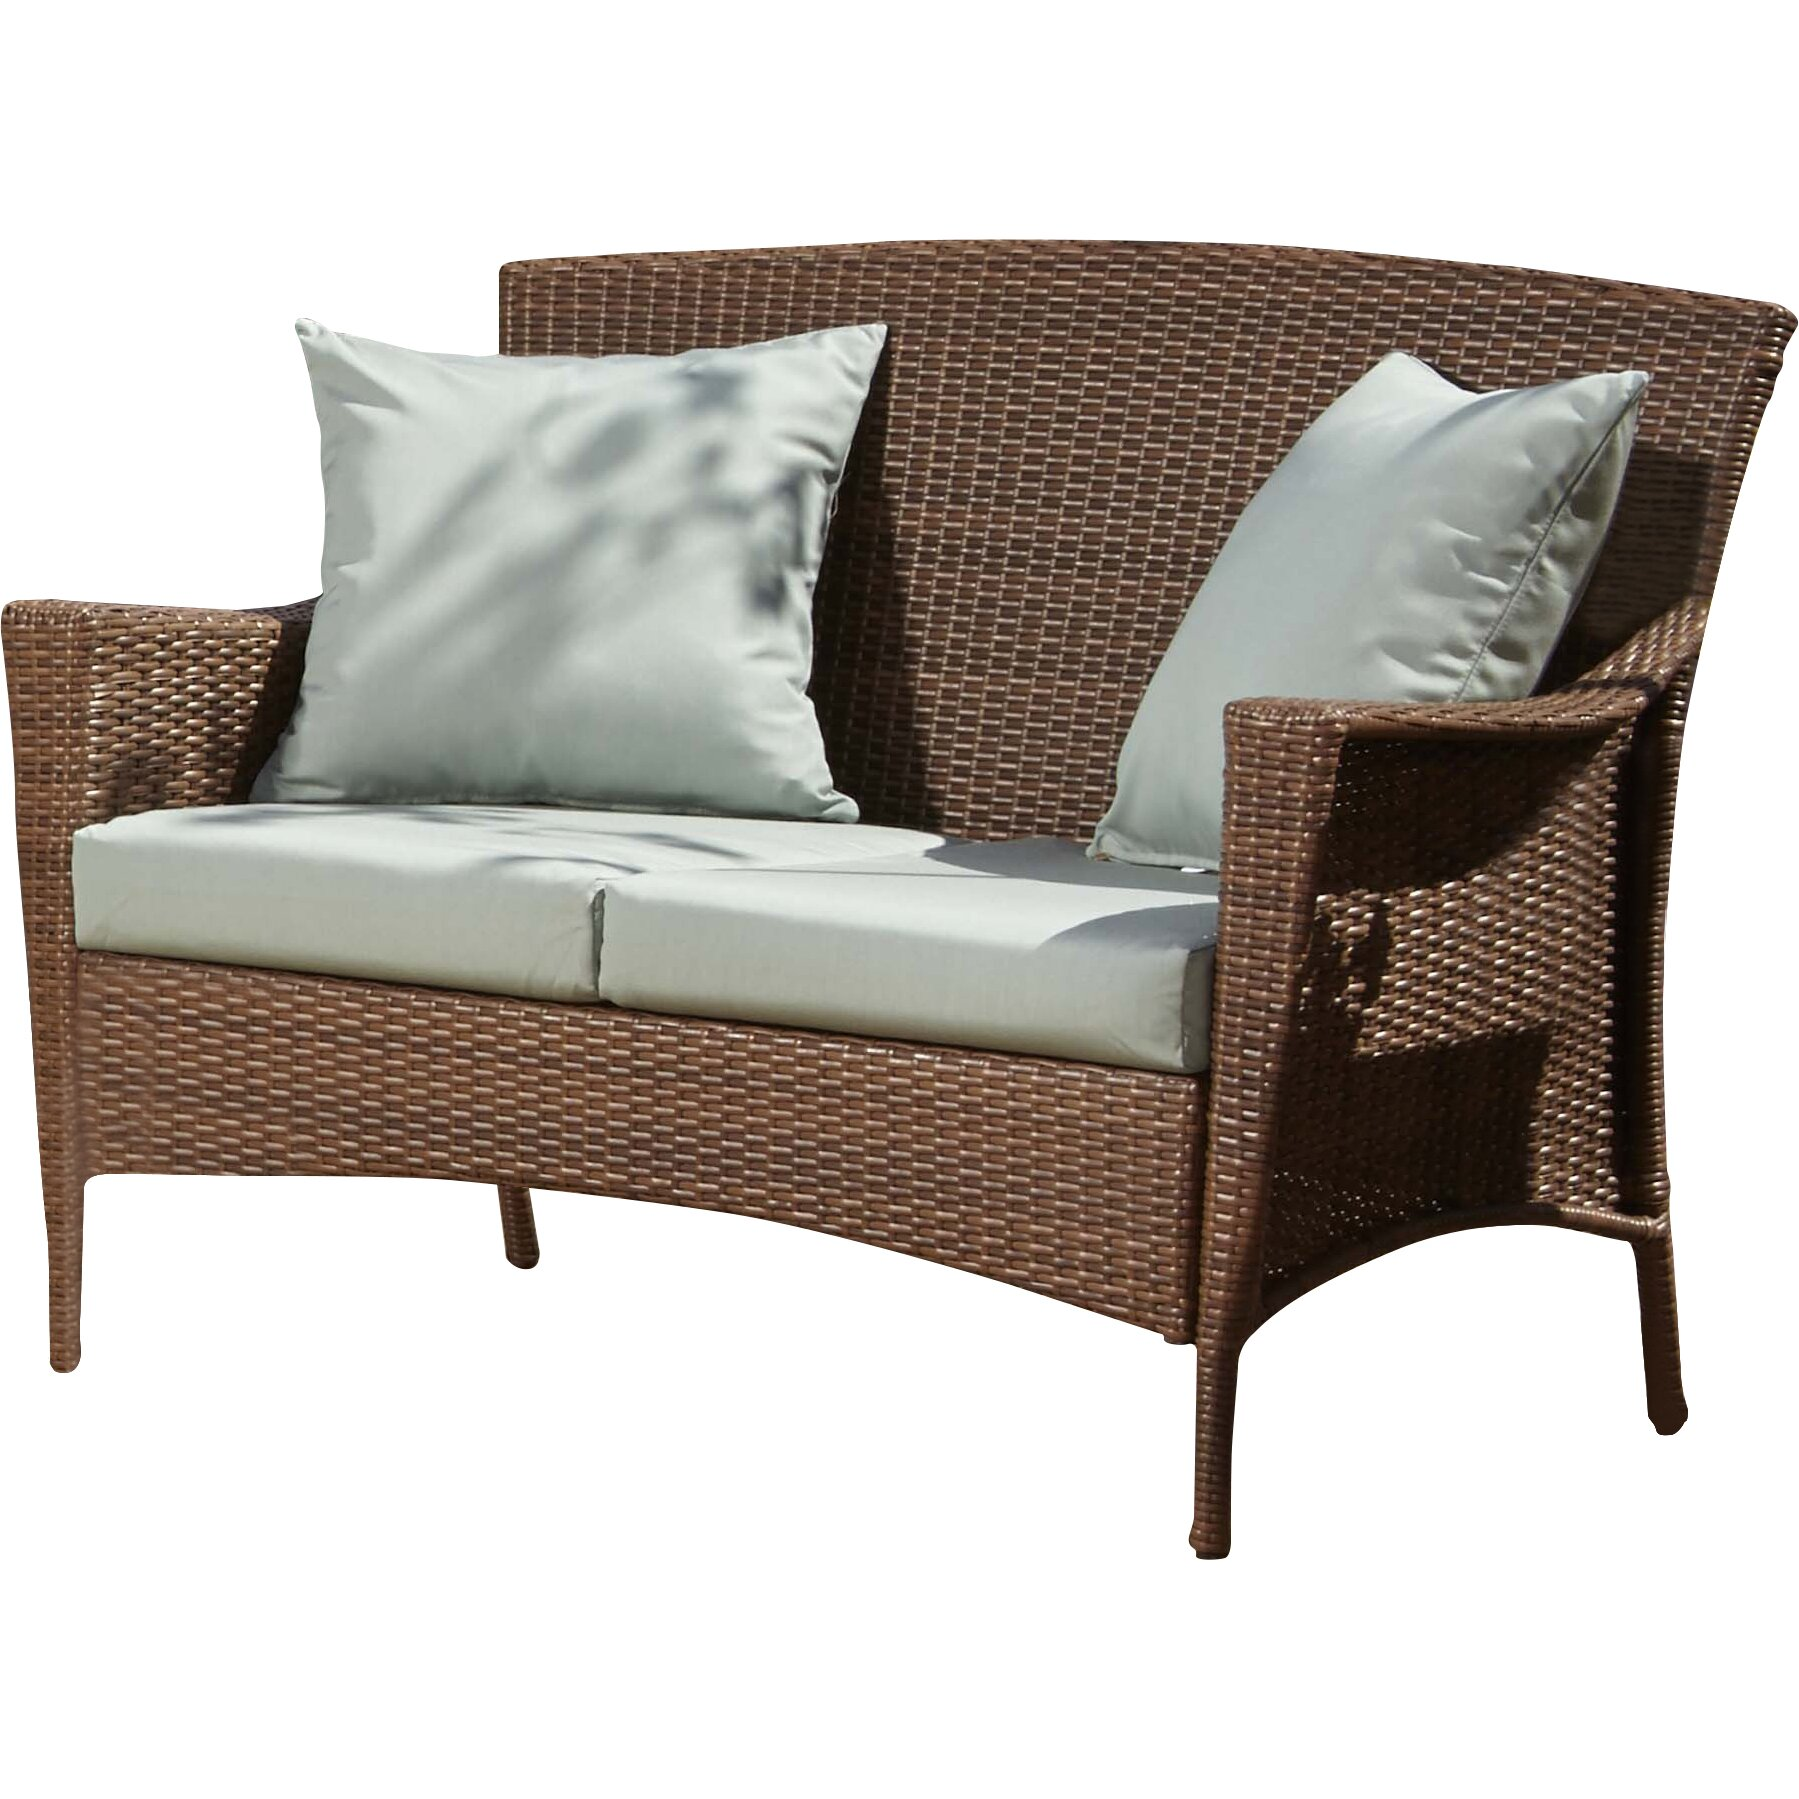 Panama Jack Key Biscayne Loveseat with Cushions & Reviews